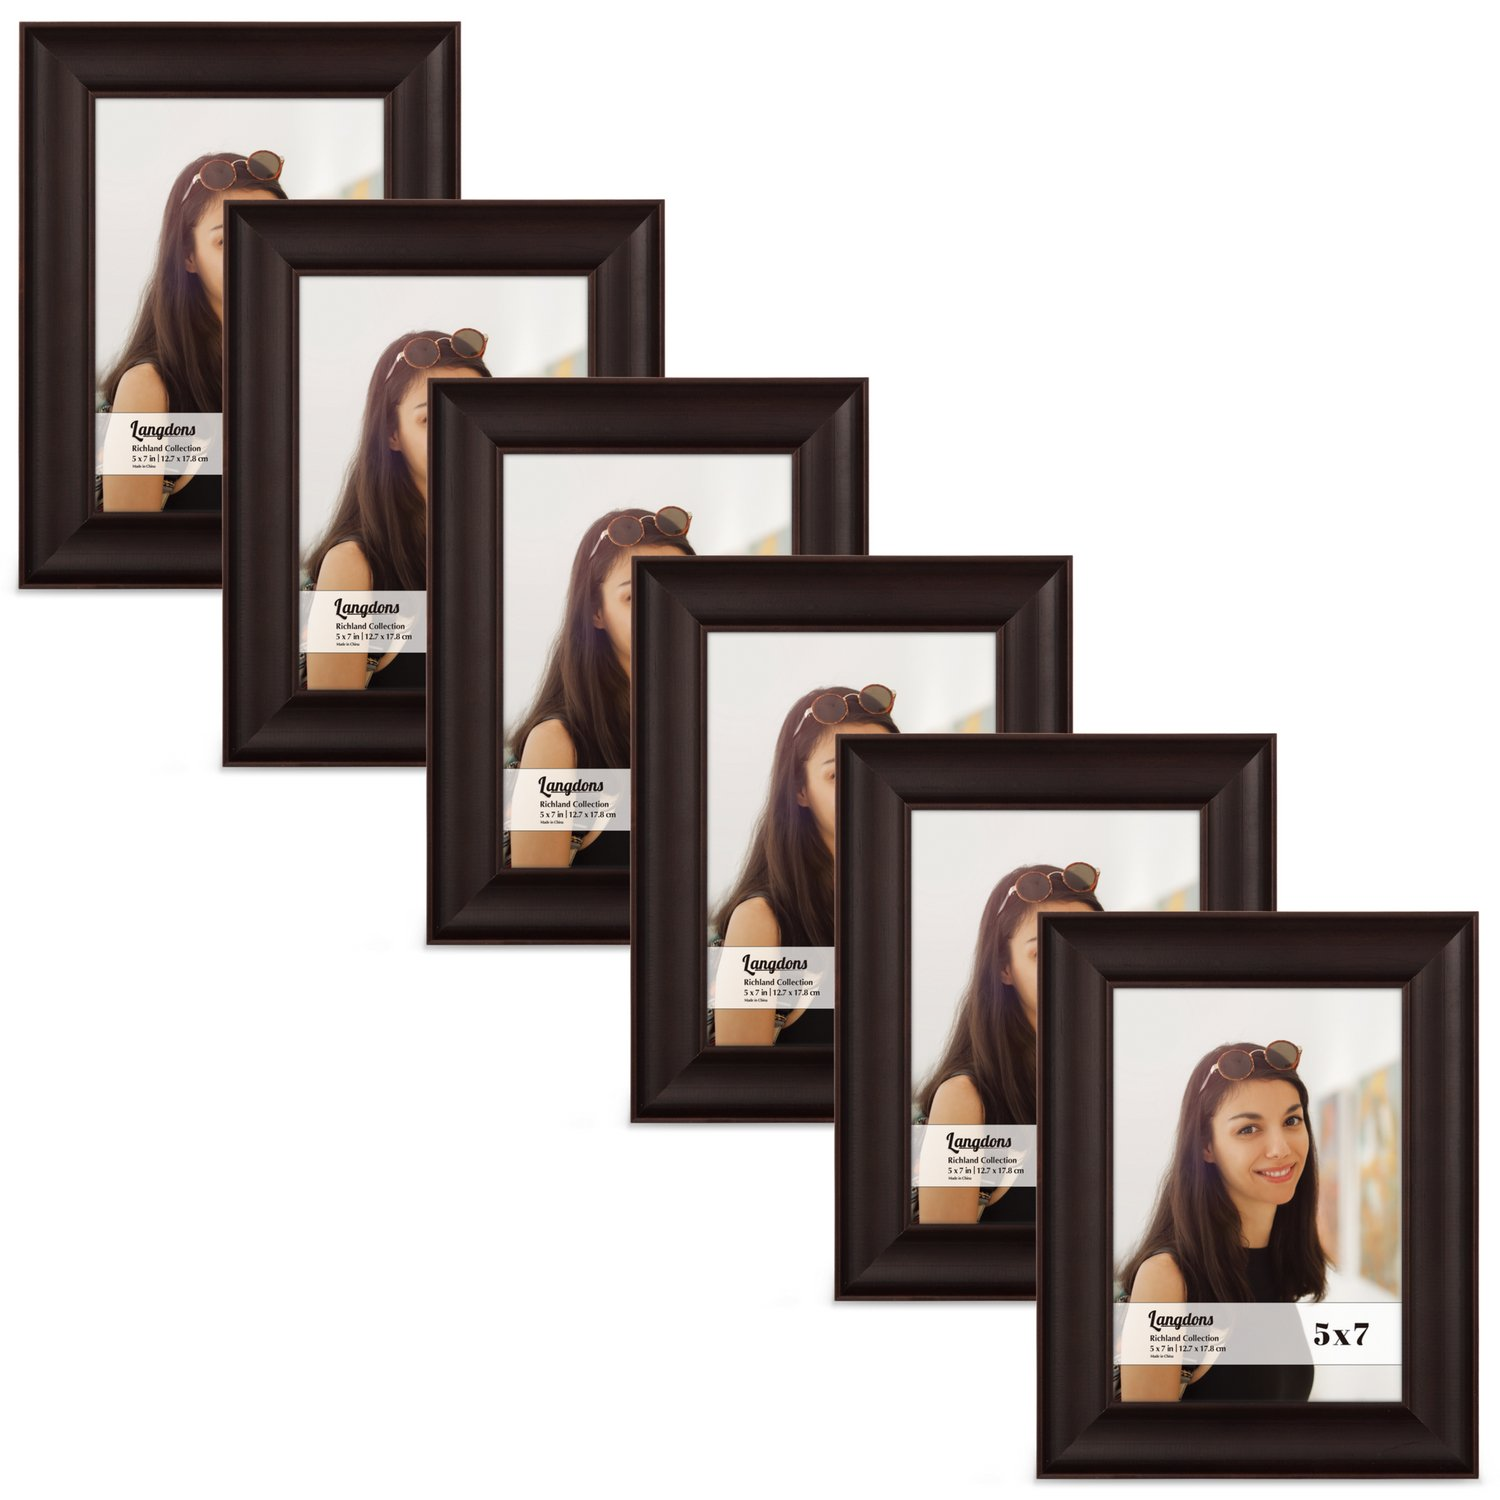 Langdons 5x7 Picture Frame Set (6-Pack, Dark Brown) Solid Wood Photo Picture Frames 5x7, Wall Hanging or Table Top, Display Picture Frame 5x7 Vertically or 7 x 5 Horizontally, Richland Series